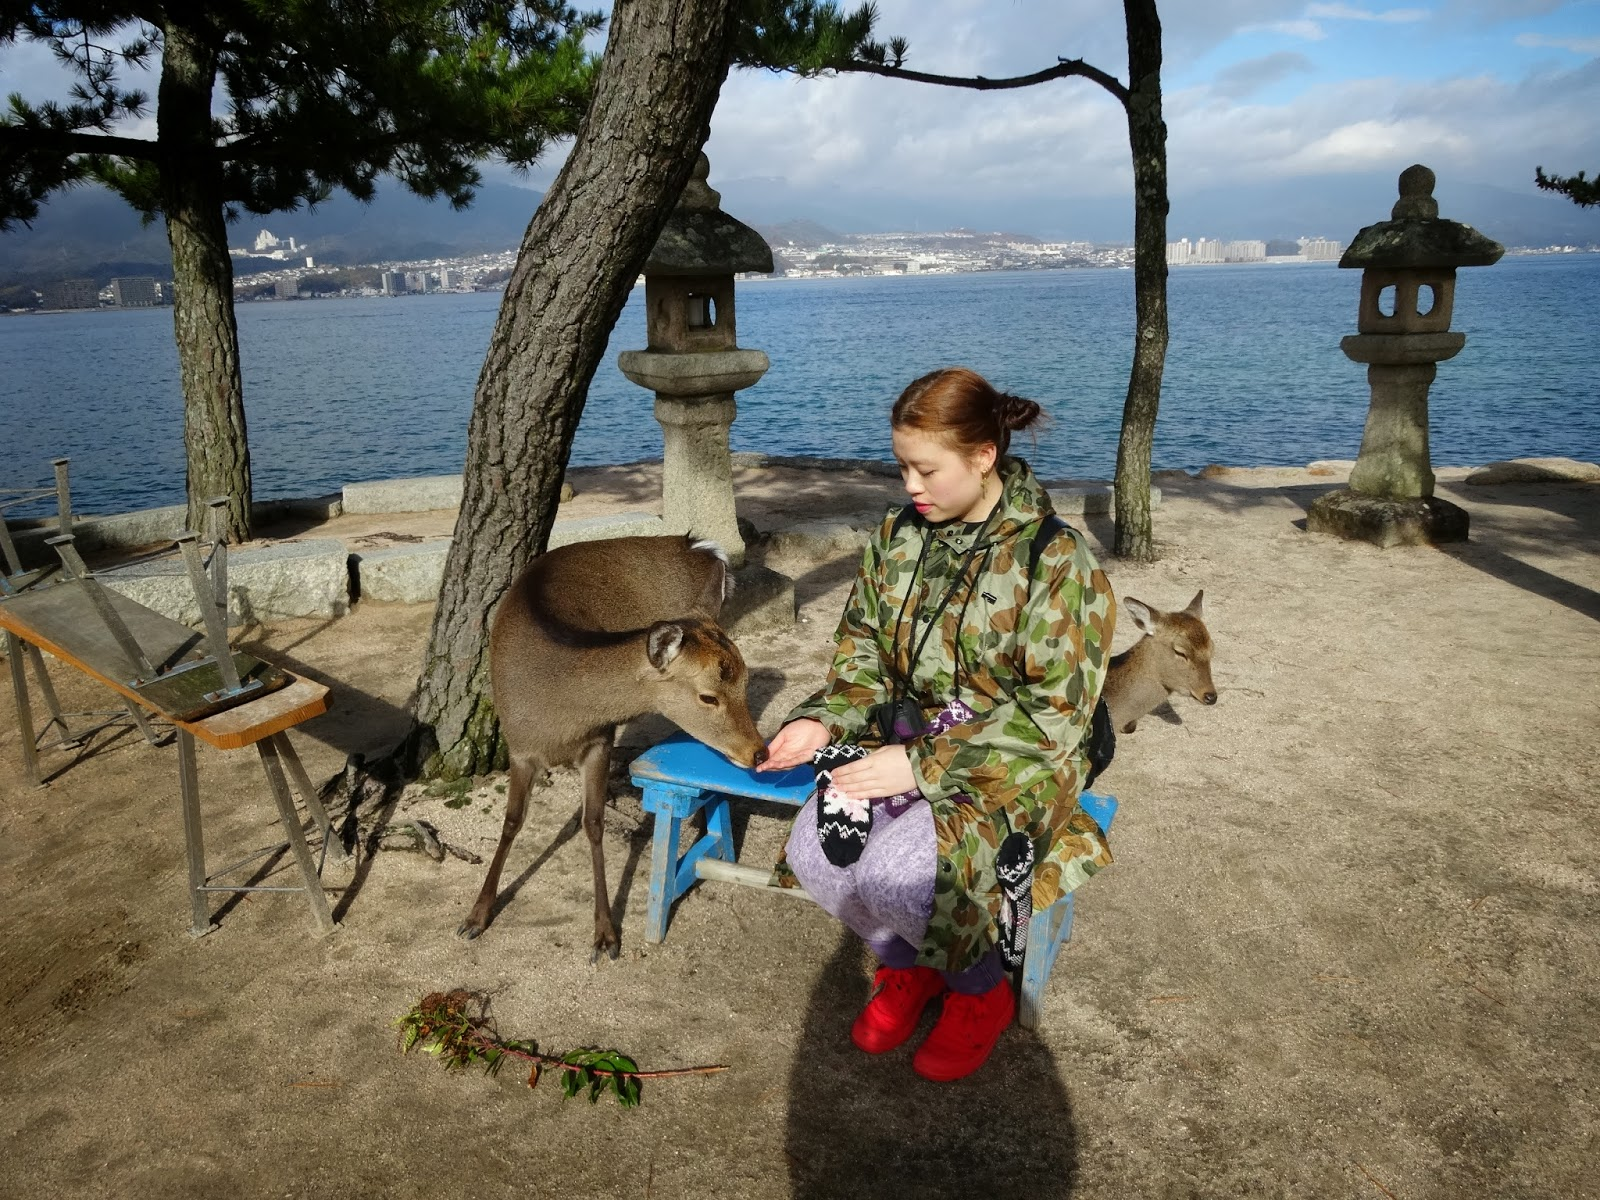 Miyajima island views near Hiroshima Japan, girl with two curious deer